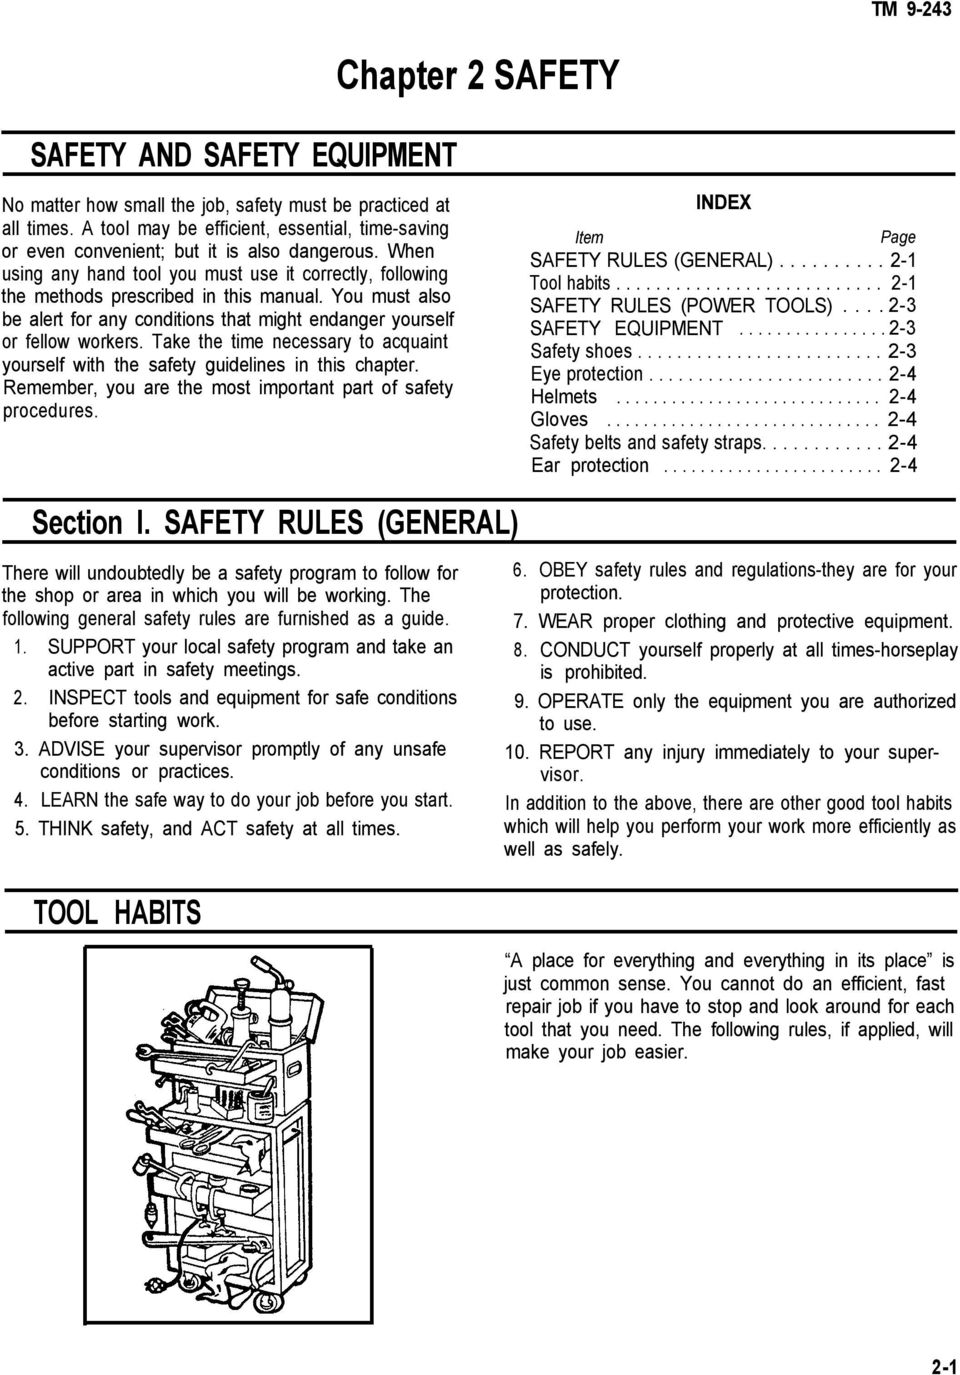 Tools and Their Uses - PDF